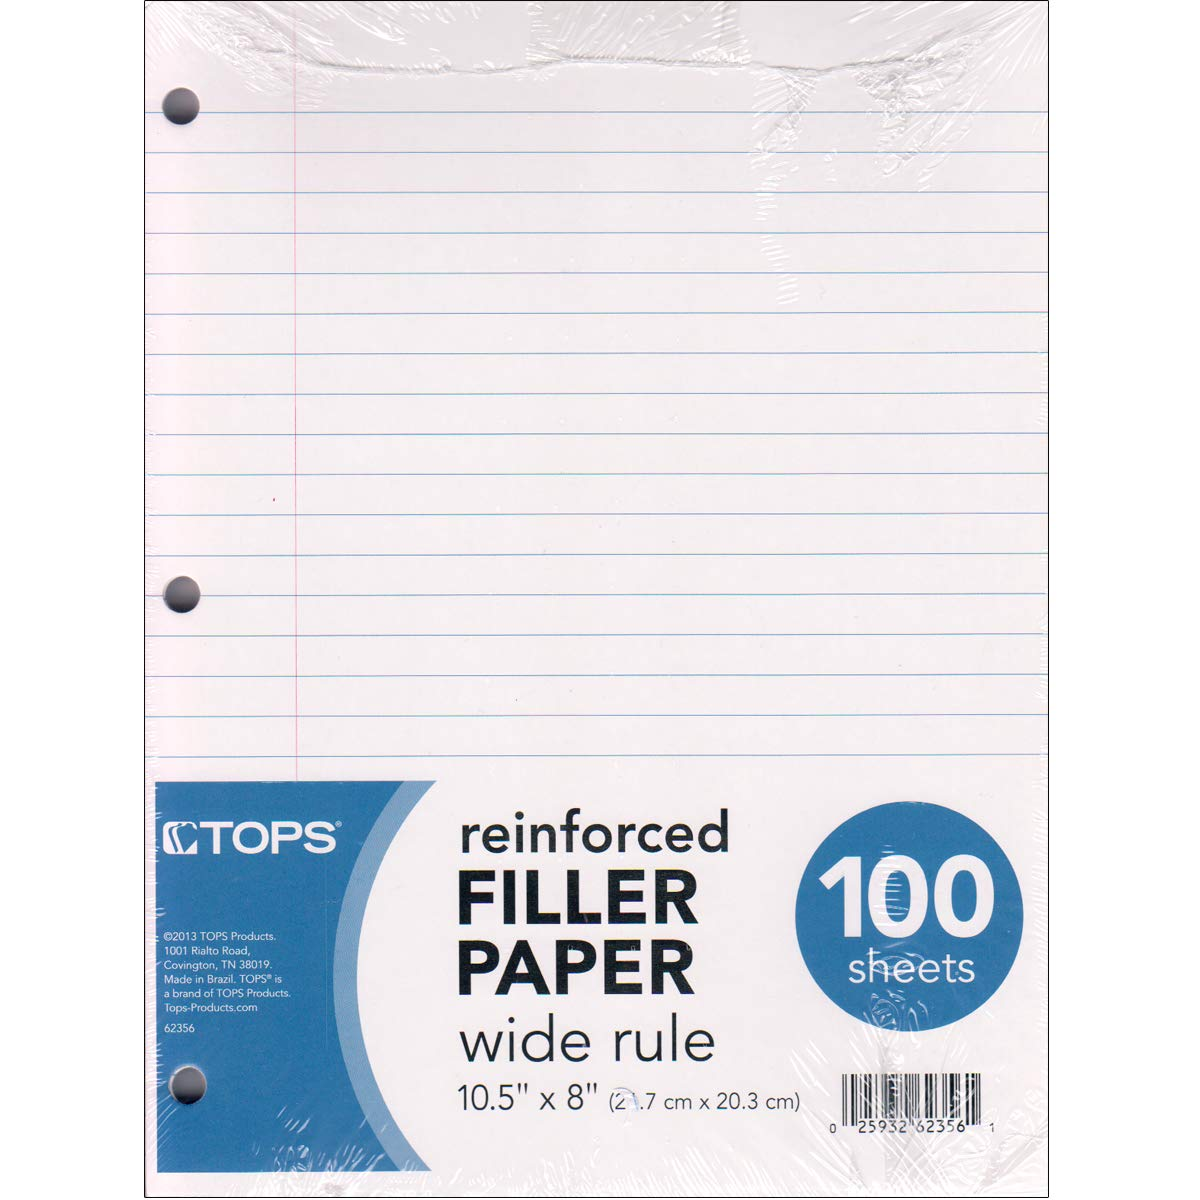 Reinforced Filler Paper - Wide Ruled (Case of 12) Ideal for bulk buyers by E.clips USA